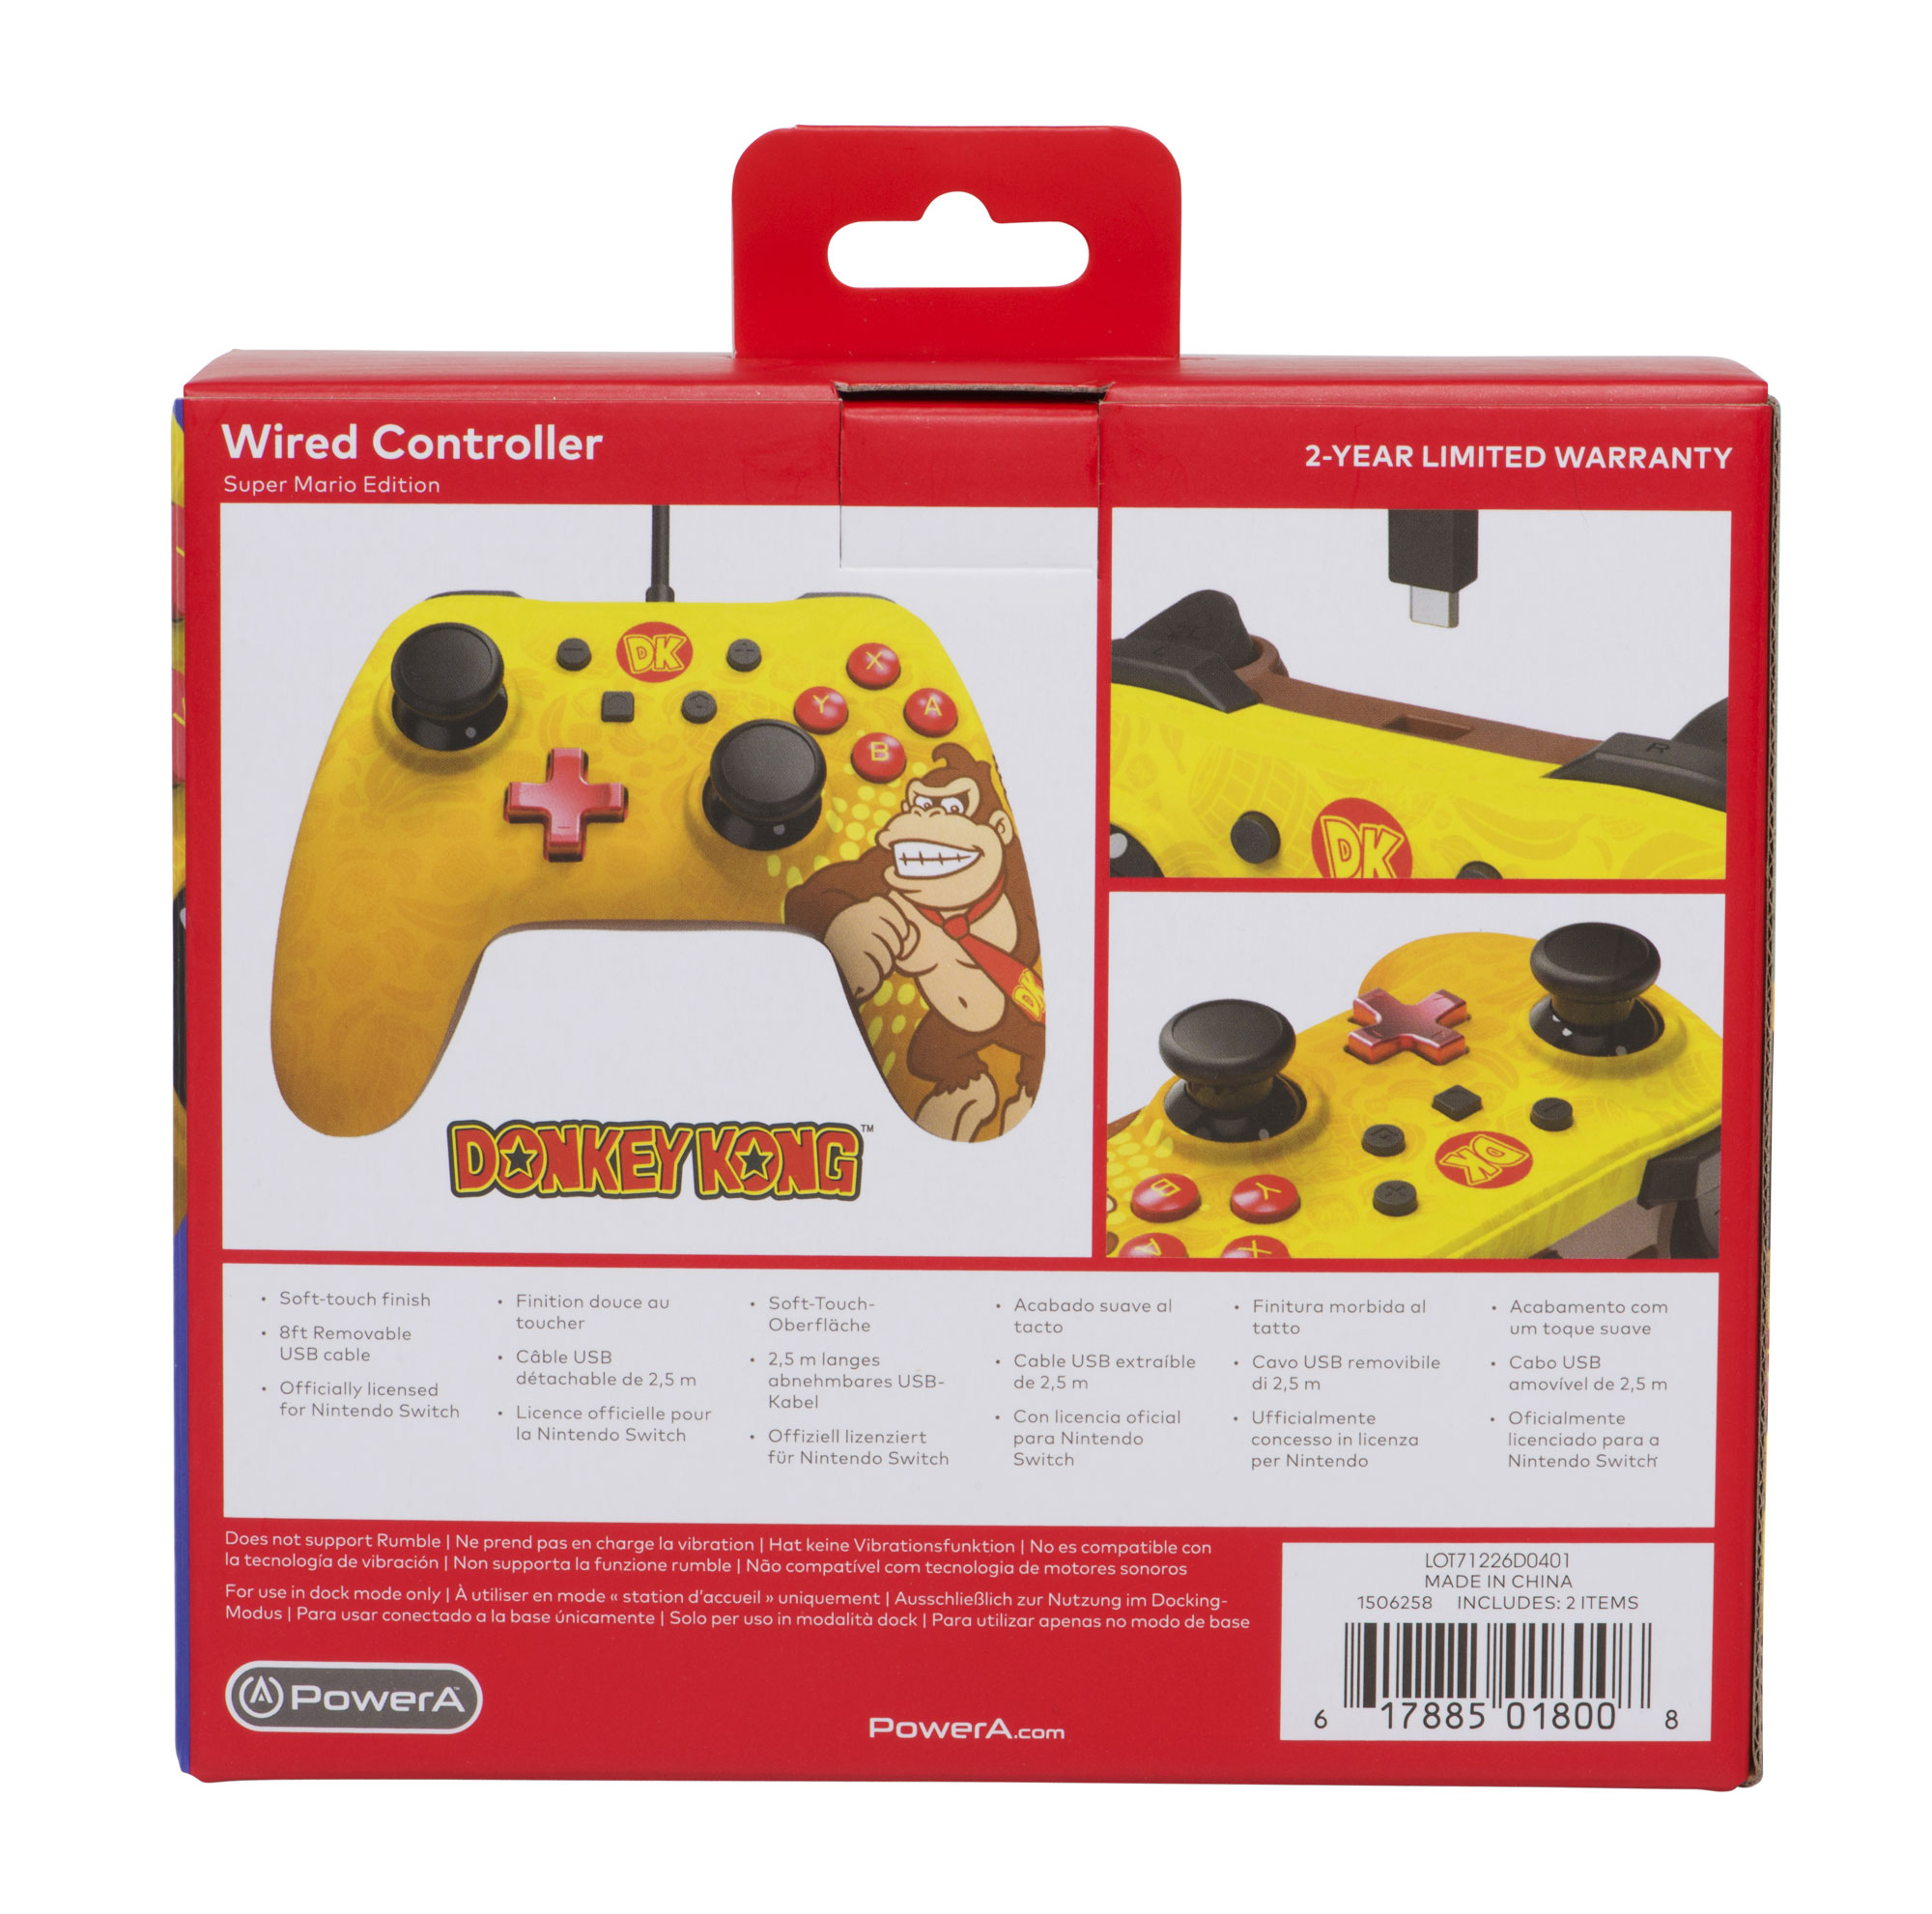 powera wired controller for